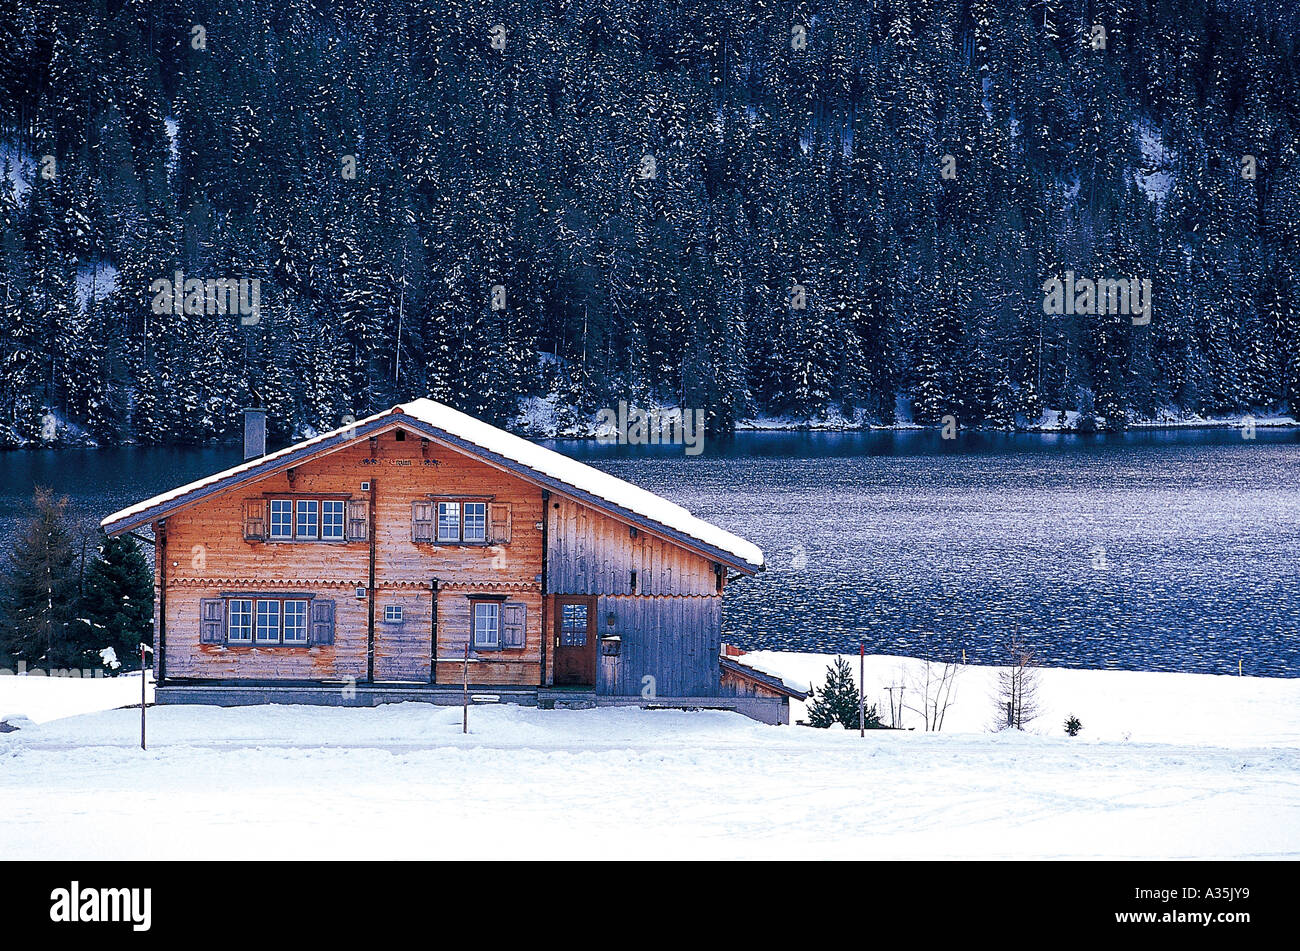 snow over wooden house in the mountains Stock Photo